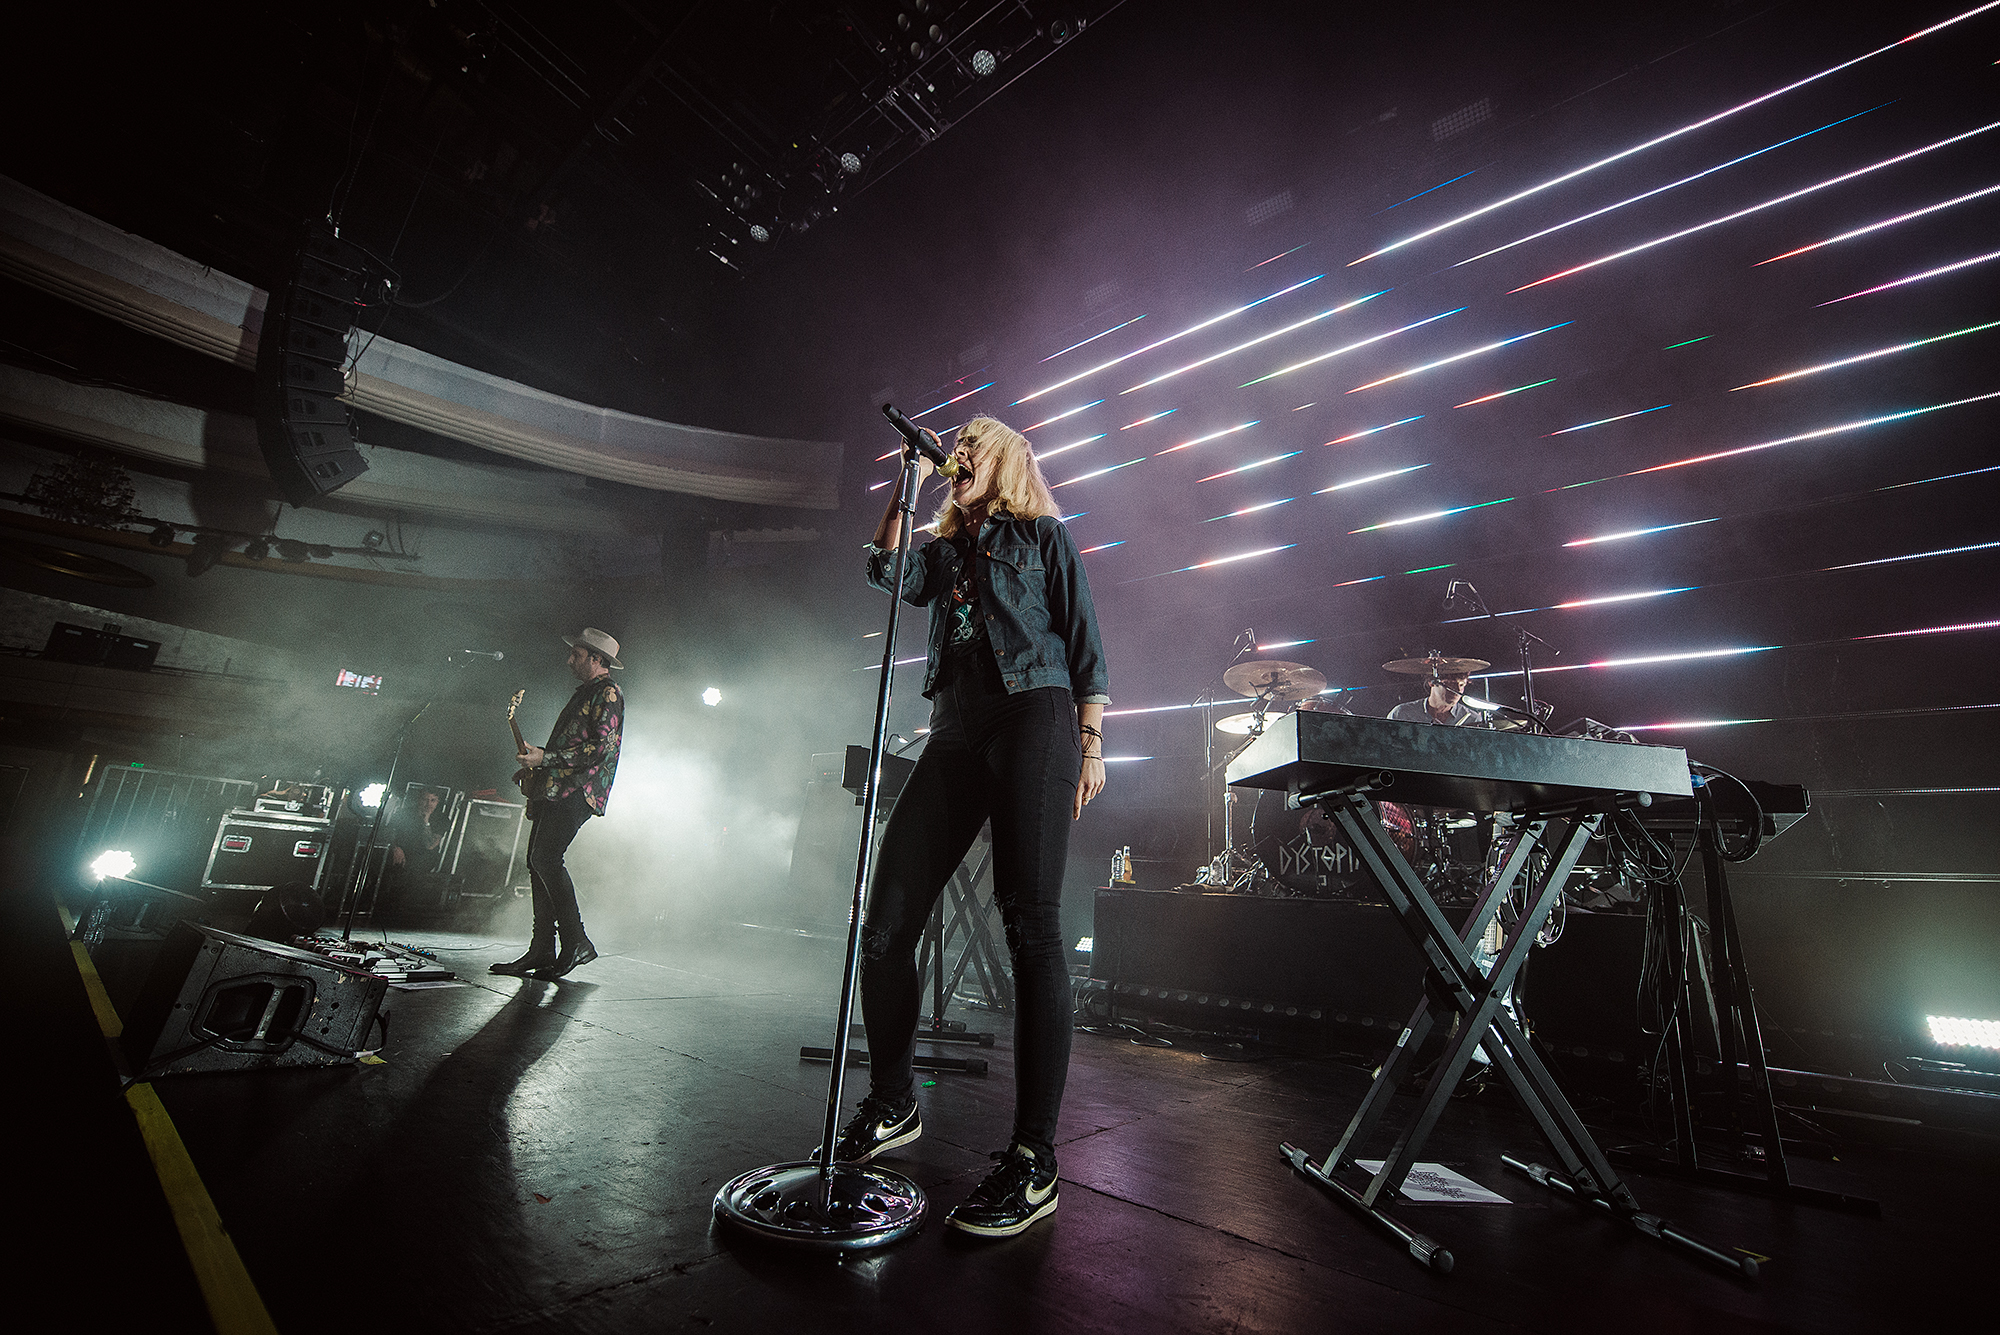 Metric at the Hollywood Palladium, Los Angeles, CA  2019.03.06